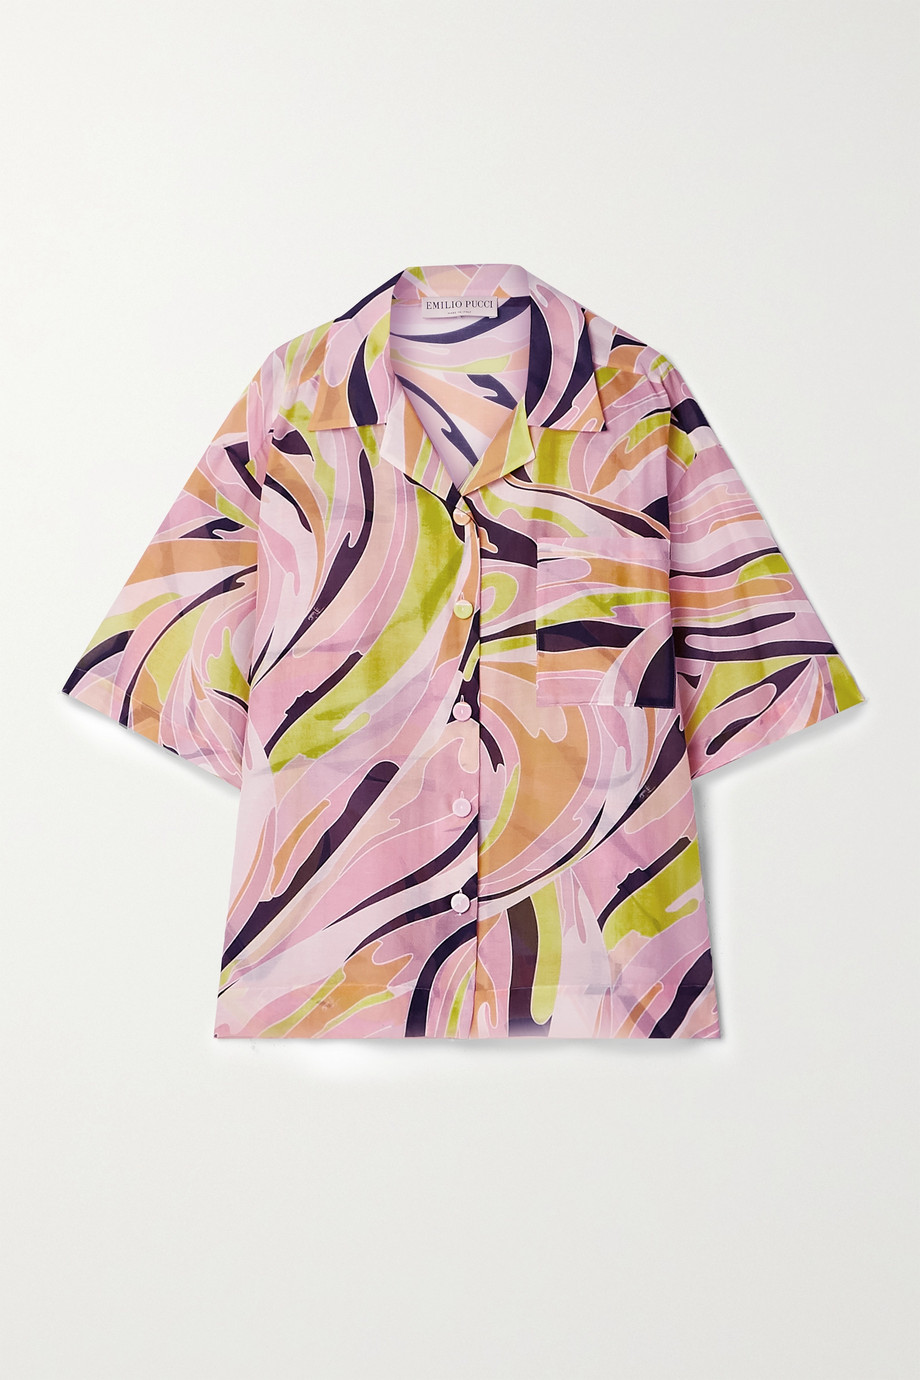 Emilio Pucci Oversized printed cotton and silk-blend shirt